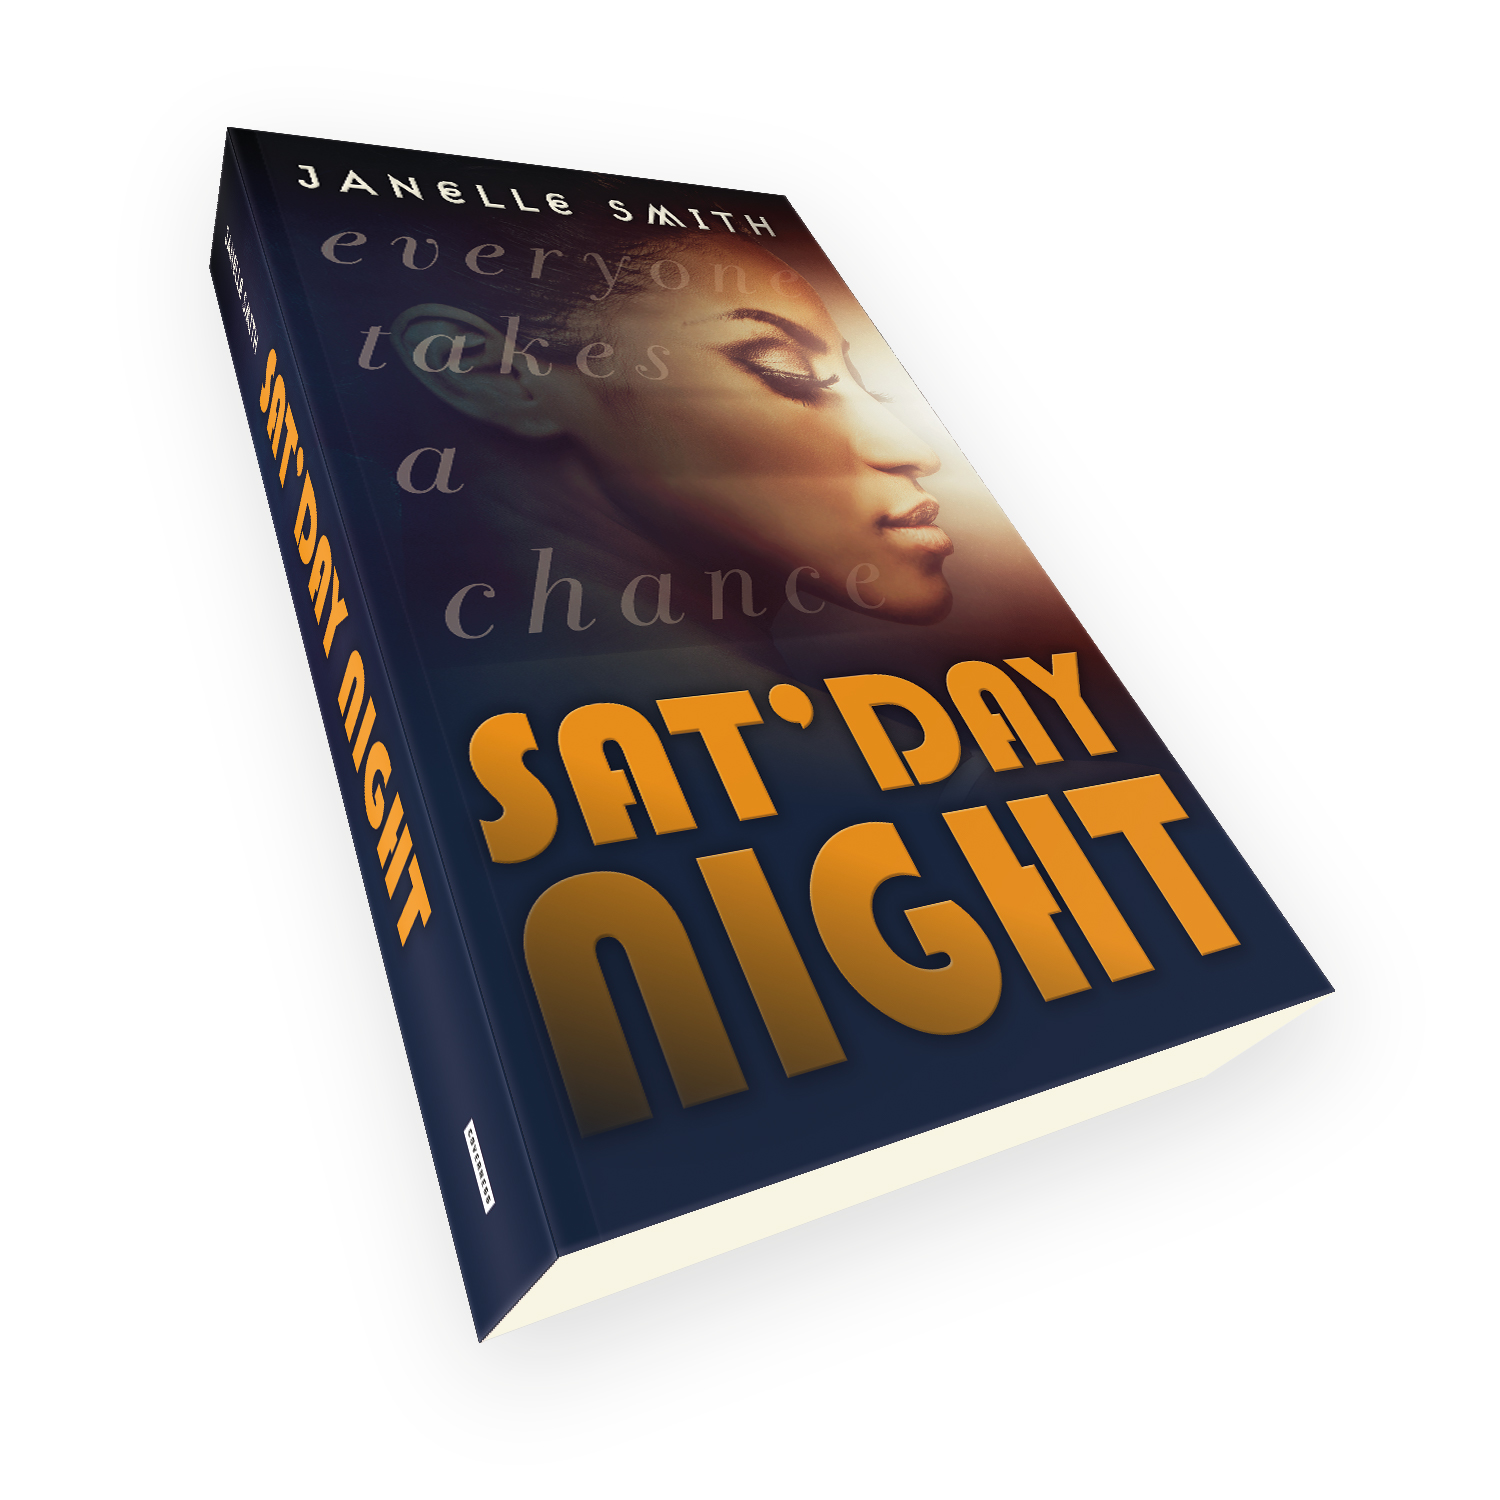 'Sat'Day Night' is a bespoke cover design for a modern dramatic novel. The book cover was designed by Mark Thomas, of coverness.com. To find out more about my book design services, please visit www.coverness.com.